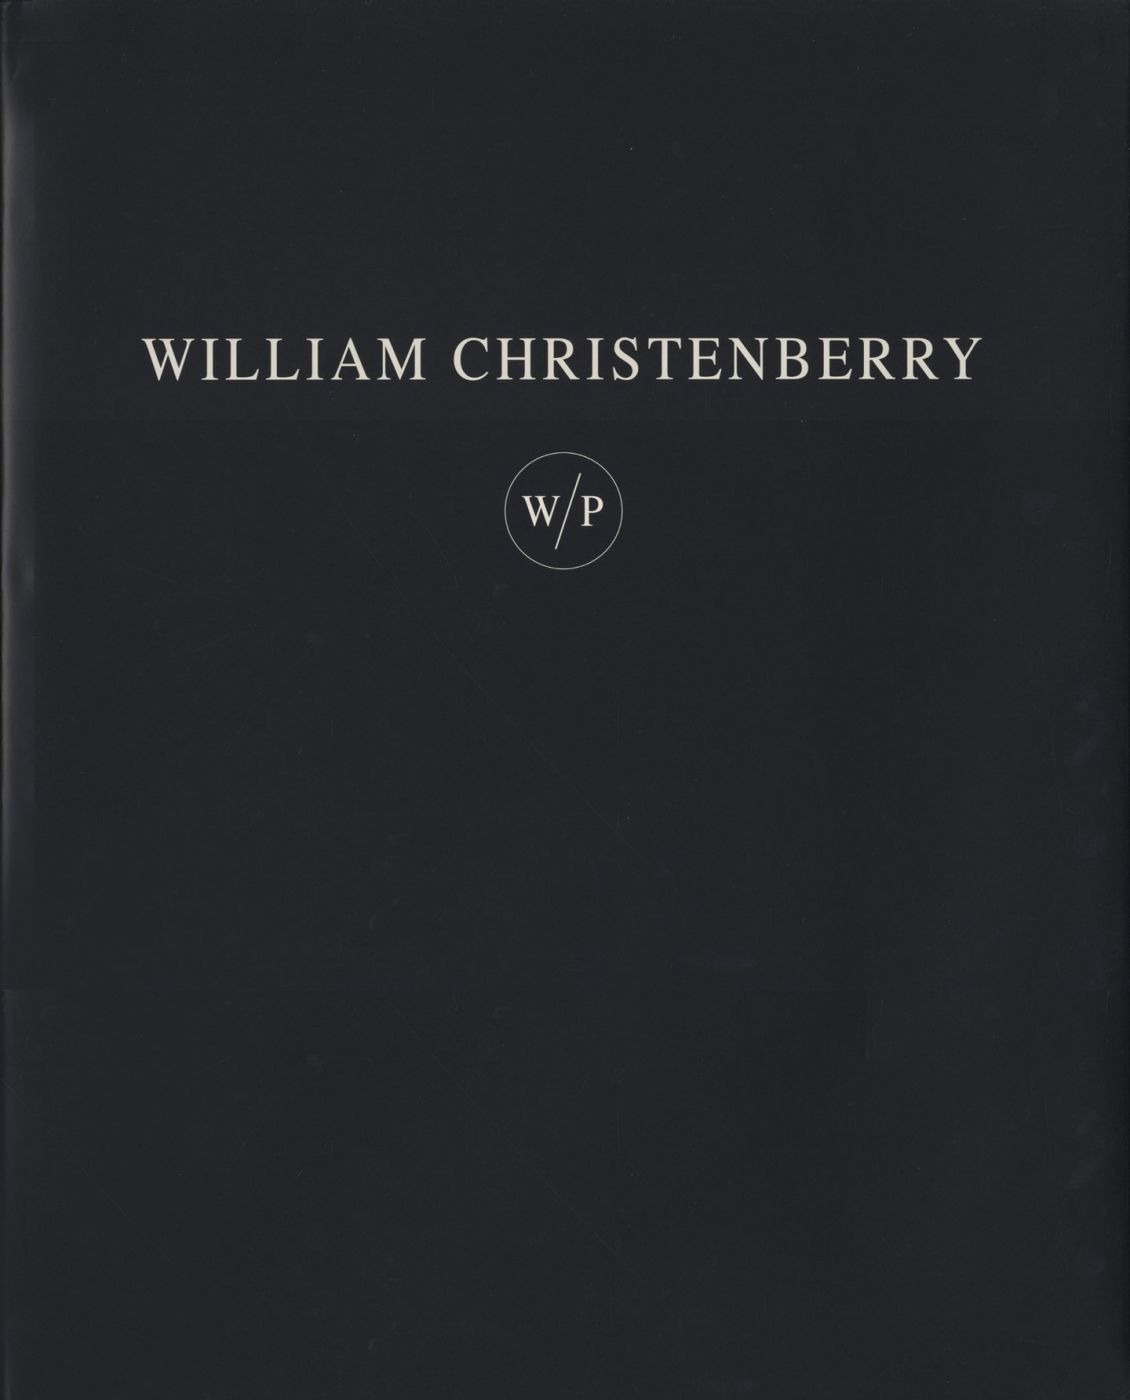 William Christenberry: Works on Paper (W/P) [SIGNED] [IMPERFECT]